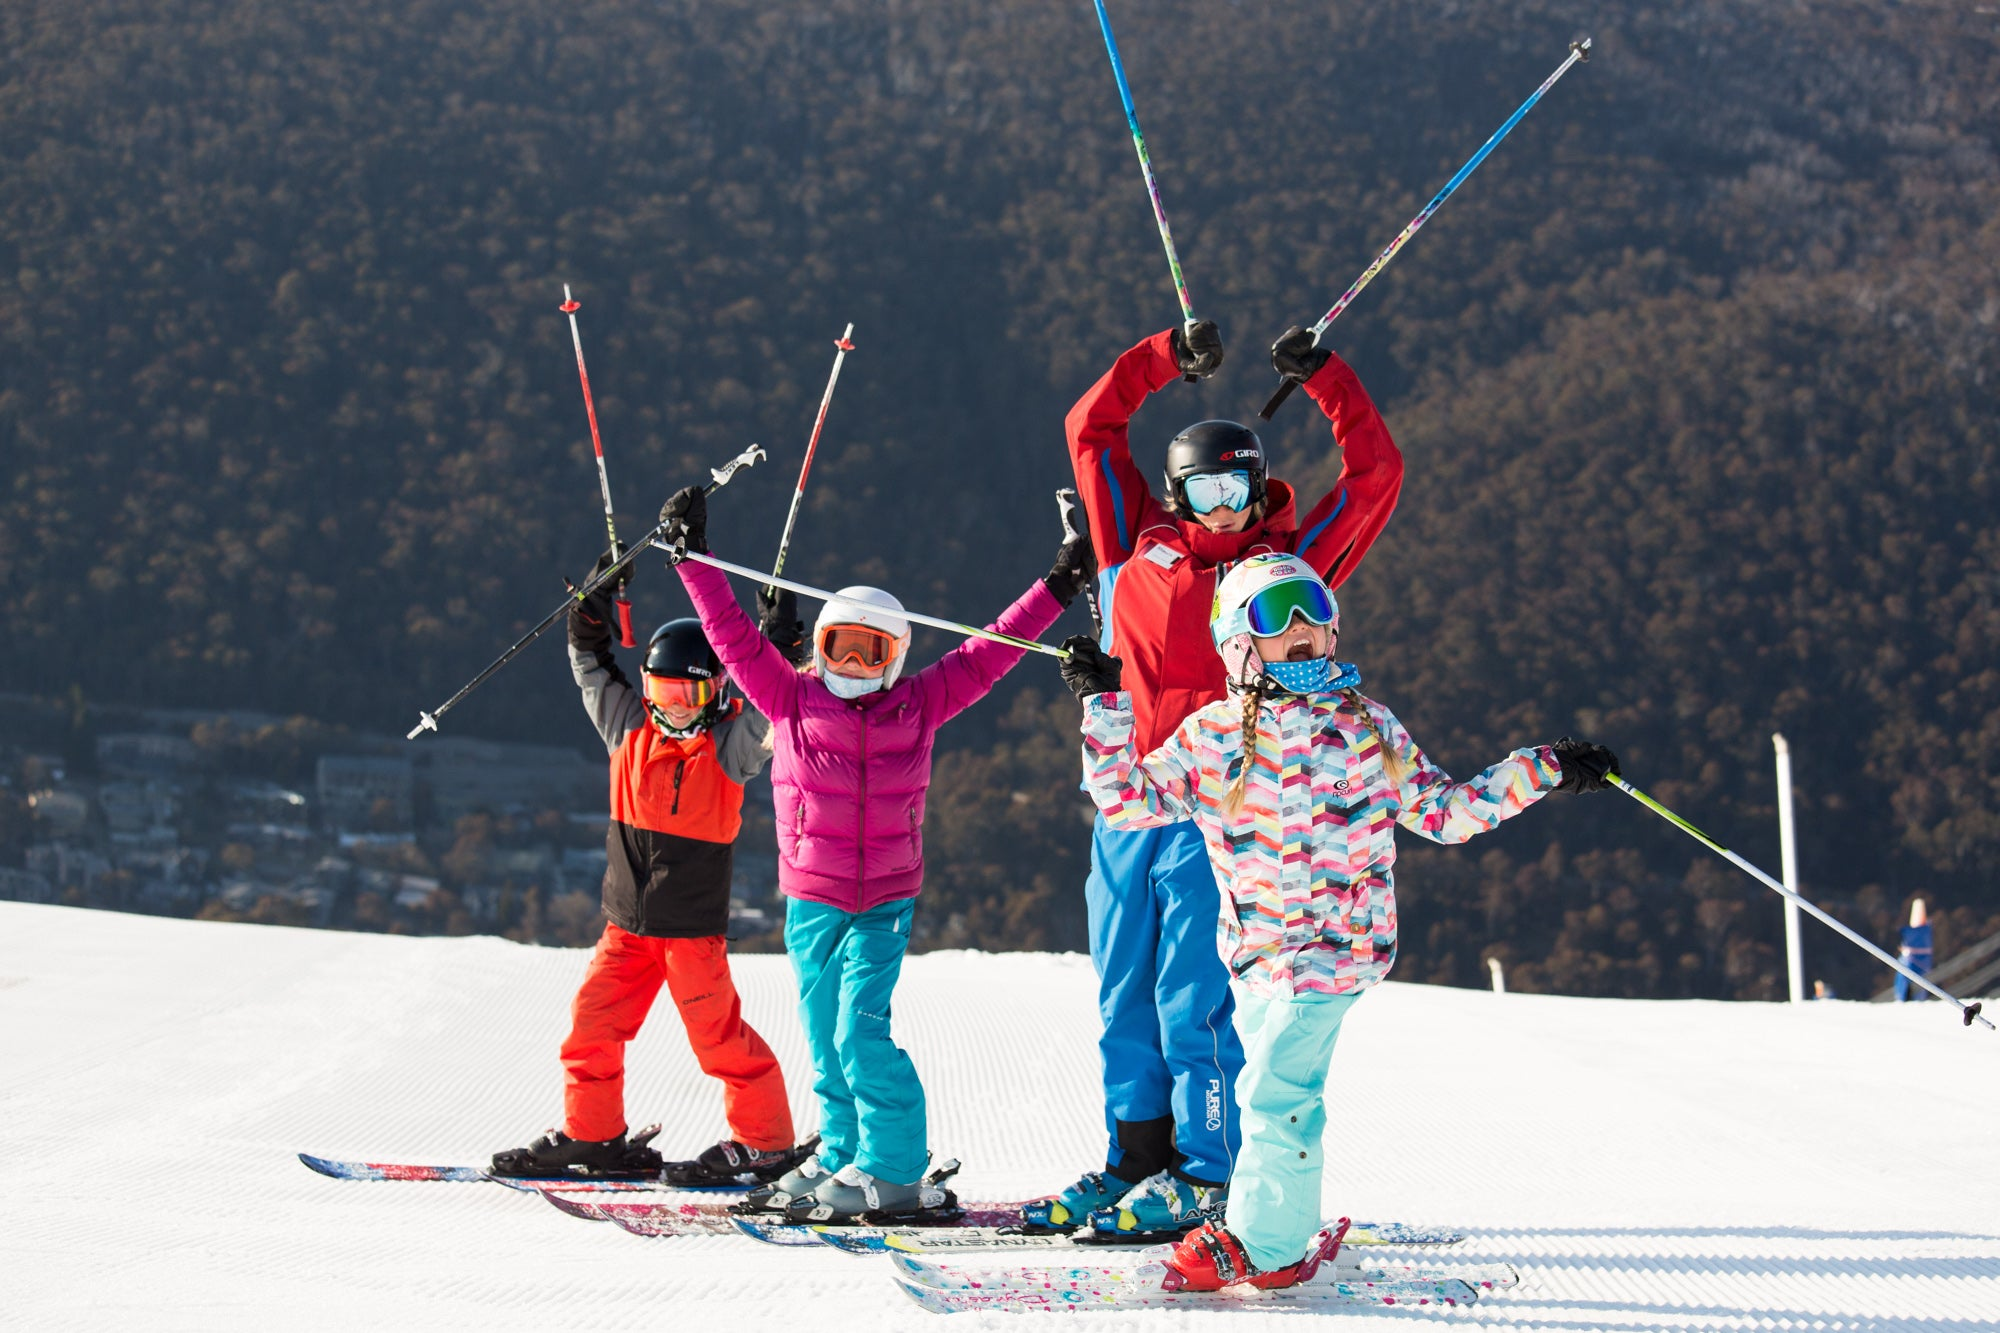 5 Best Kids Ski Accessories that will make your life easier